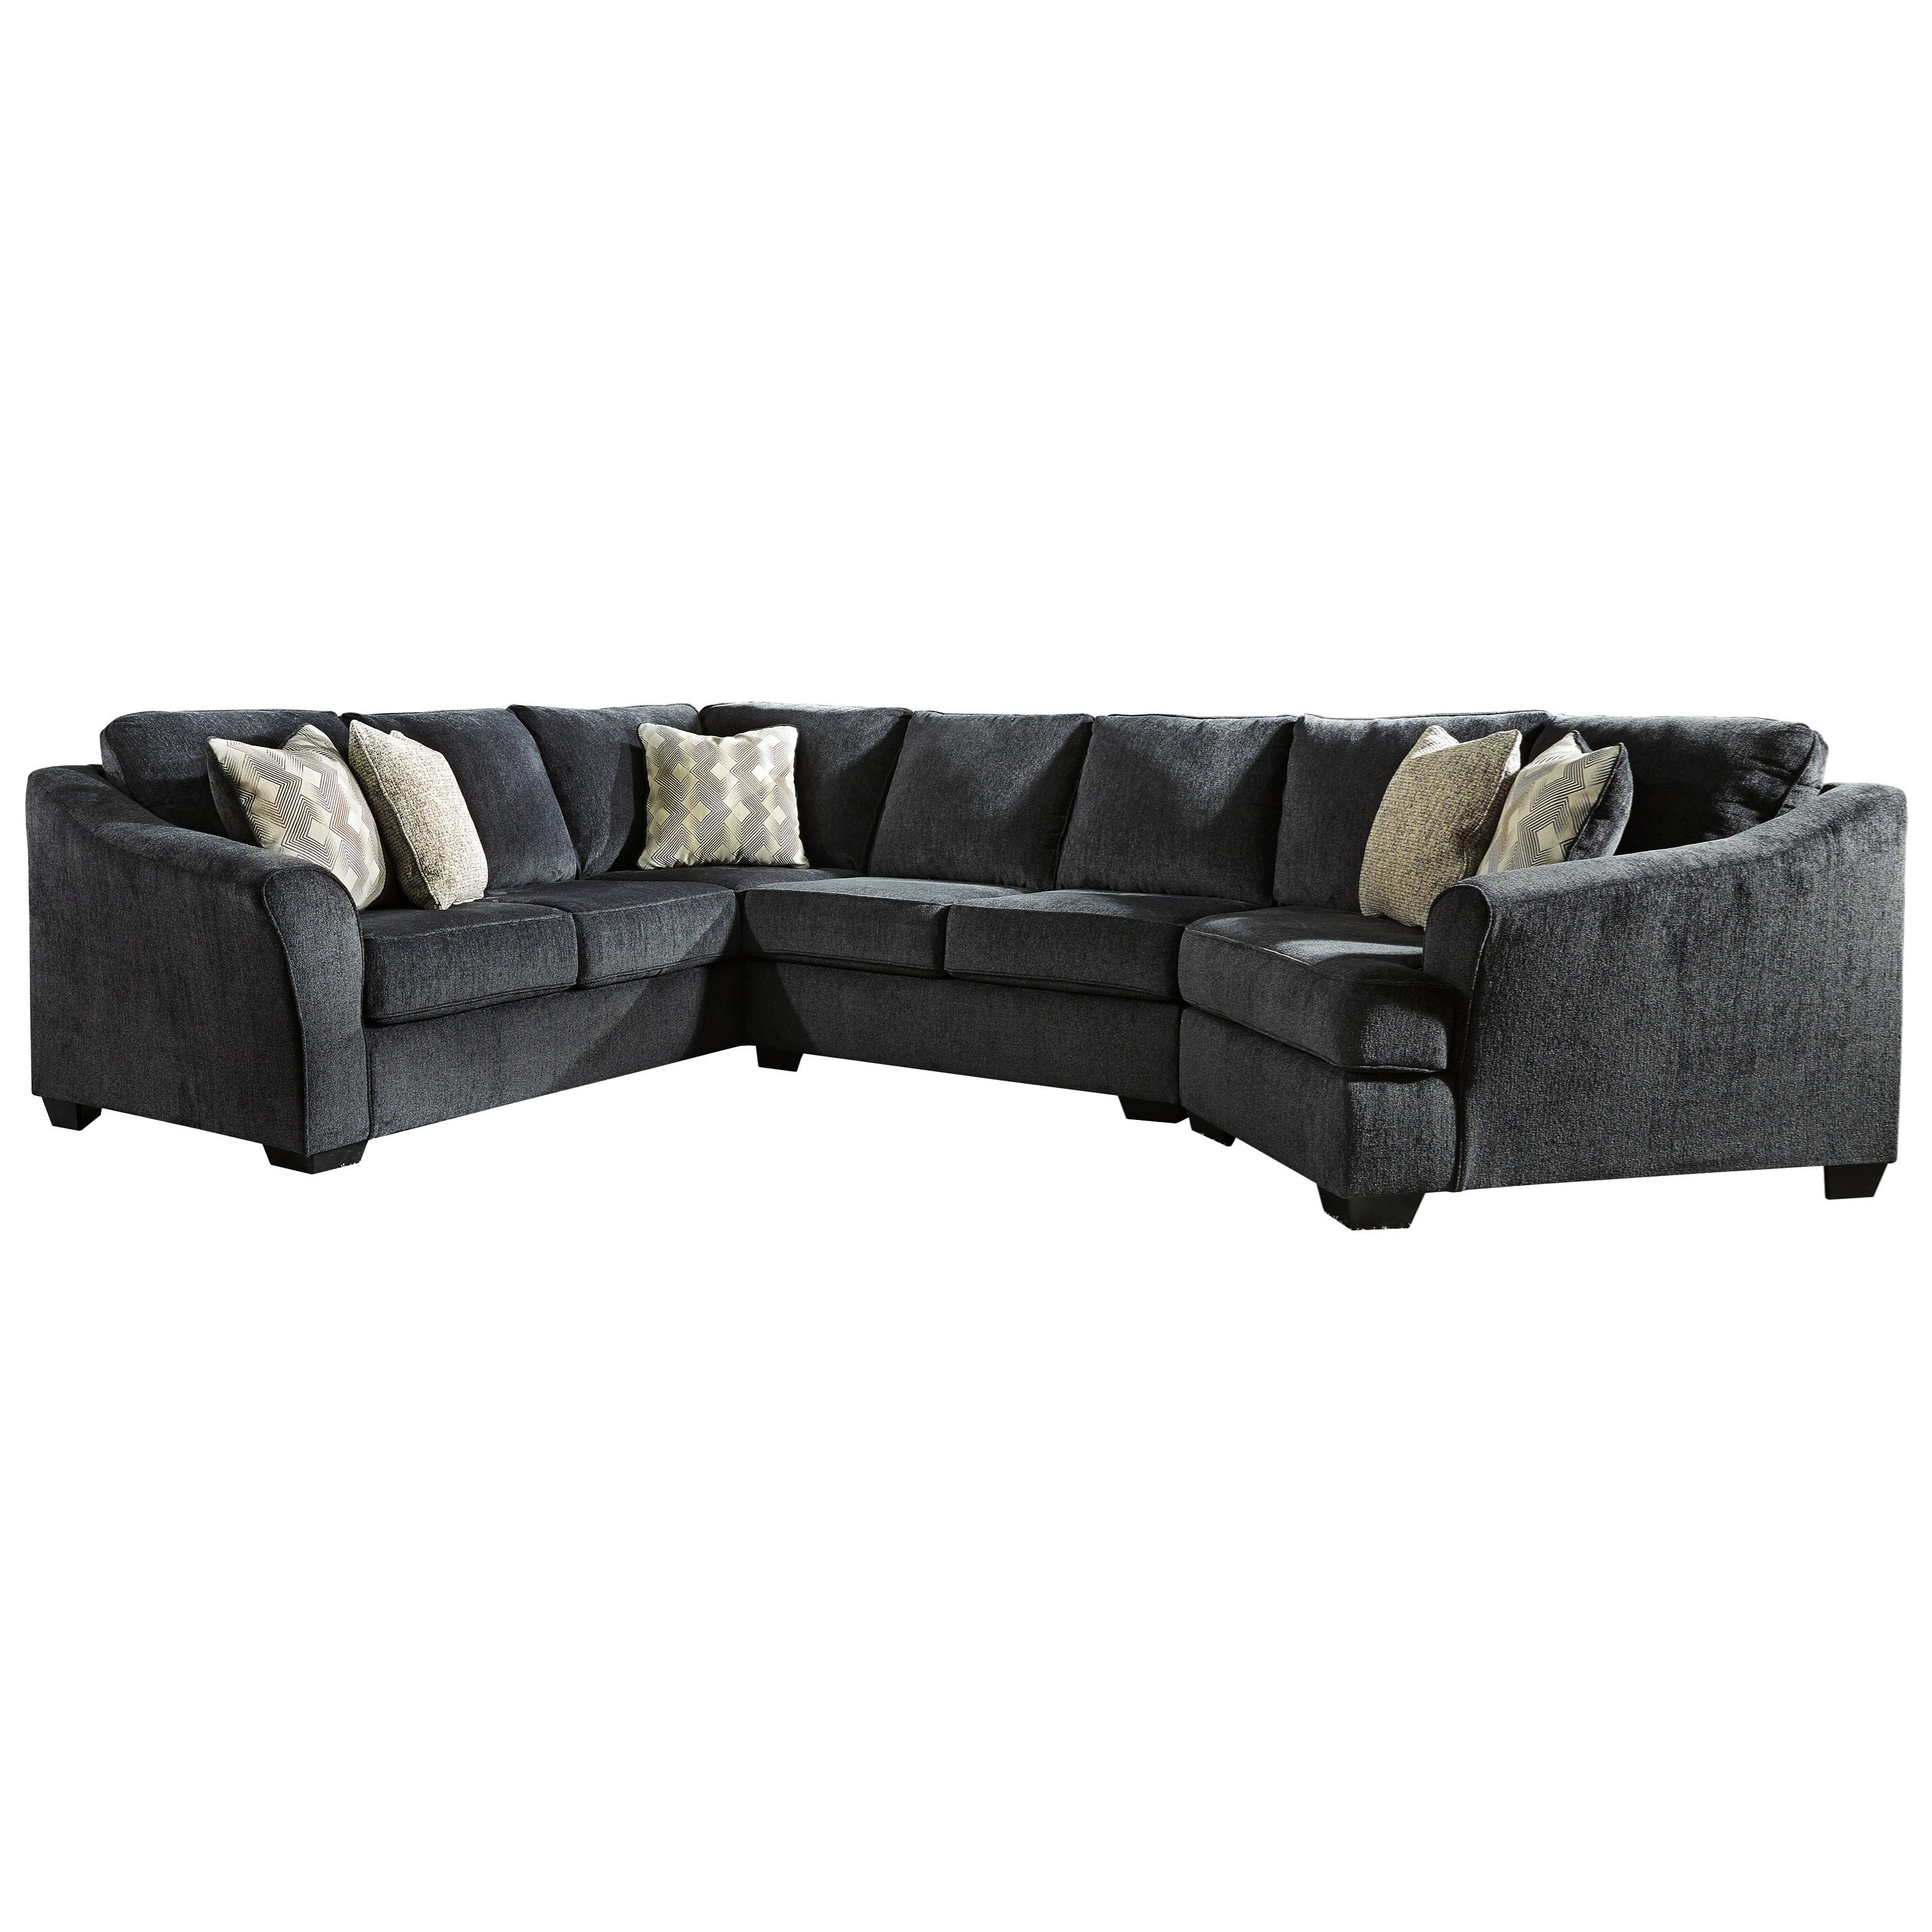 Eltmann 3-Piece Sectional with Right Cuddler by Ashley (Signature Design) at Johnny Janosik